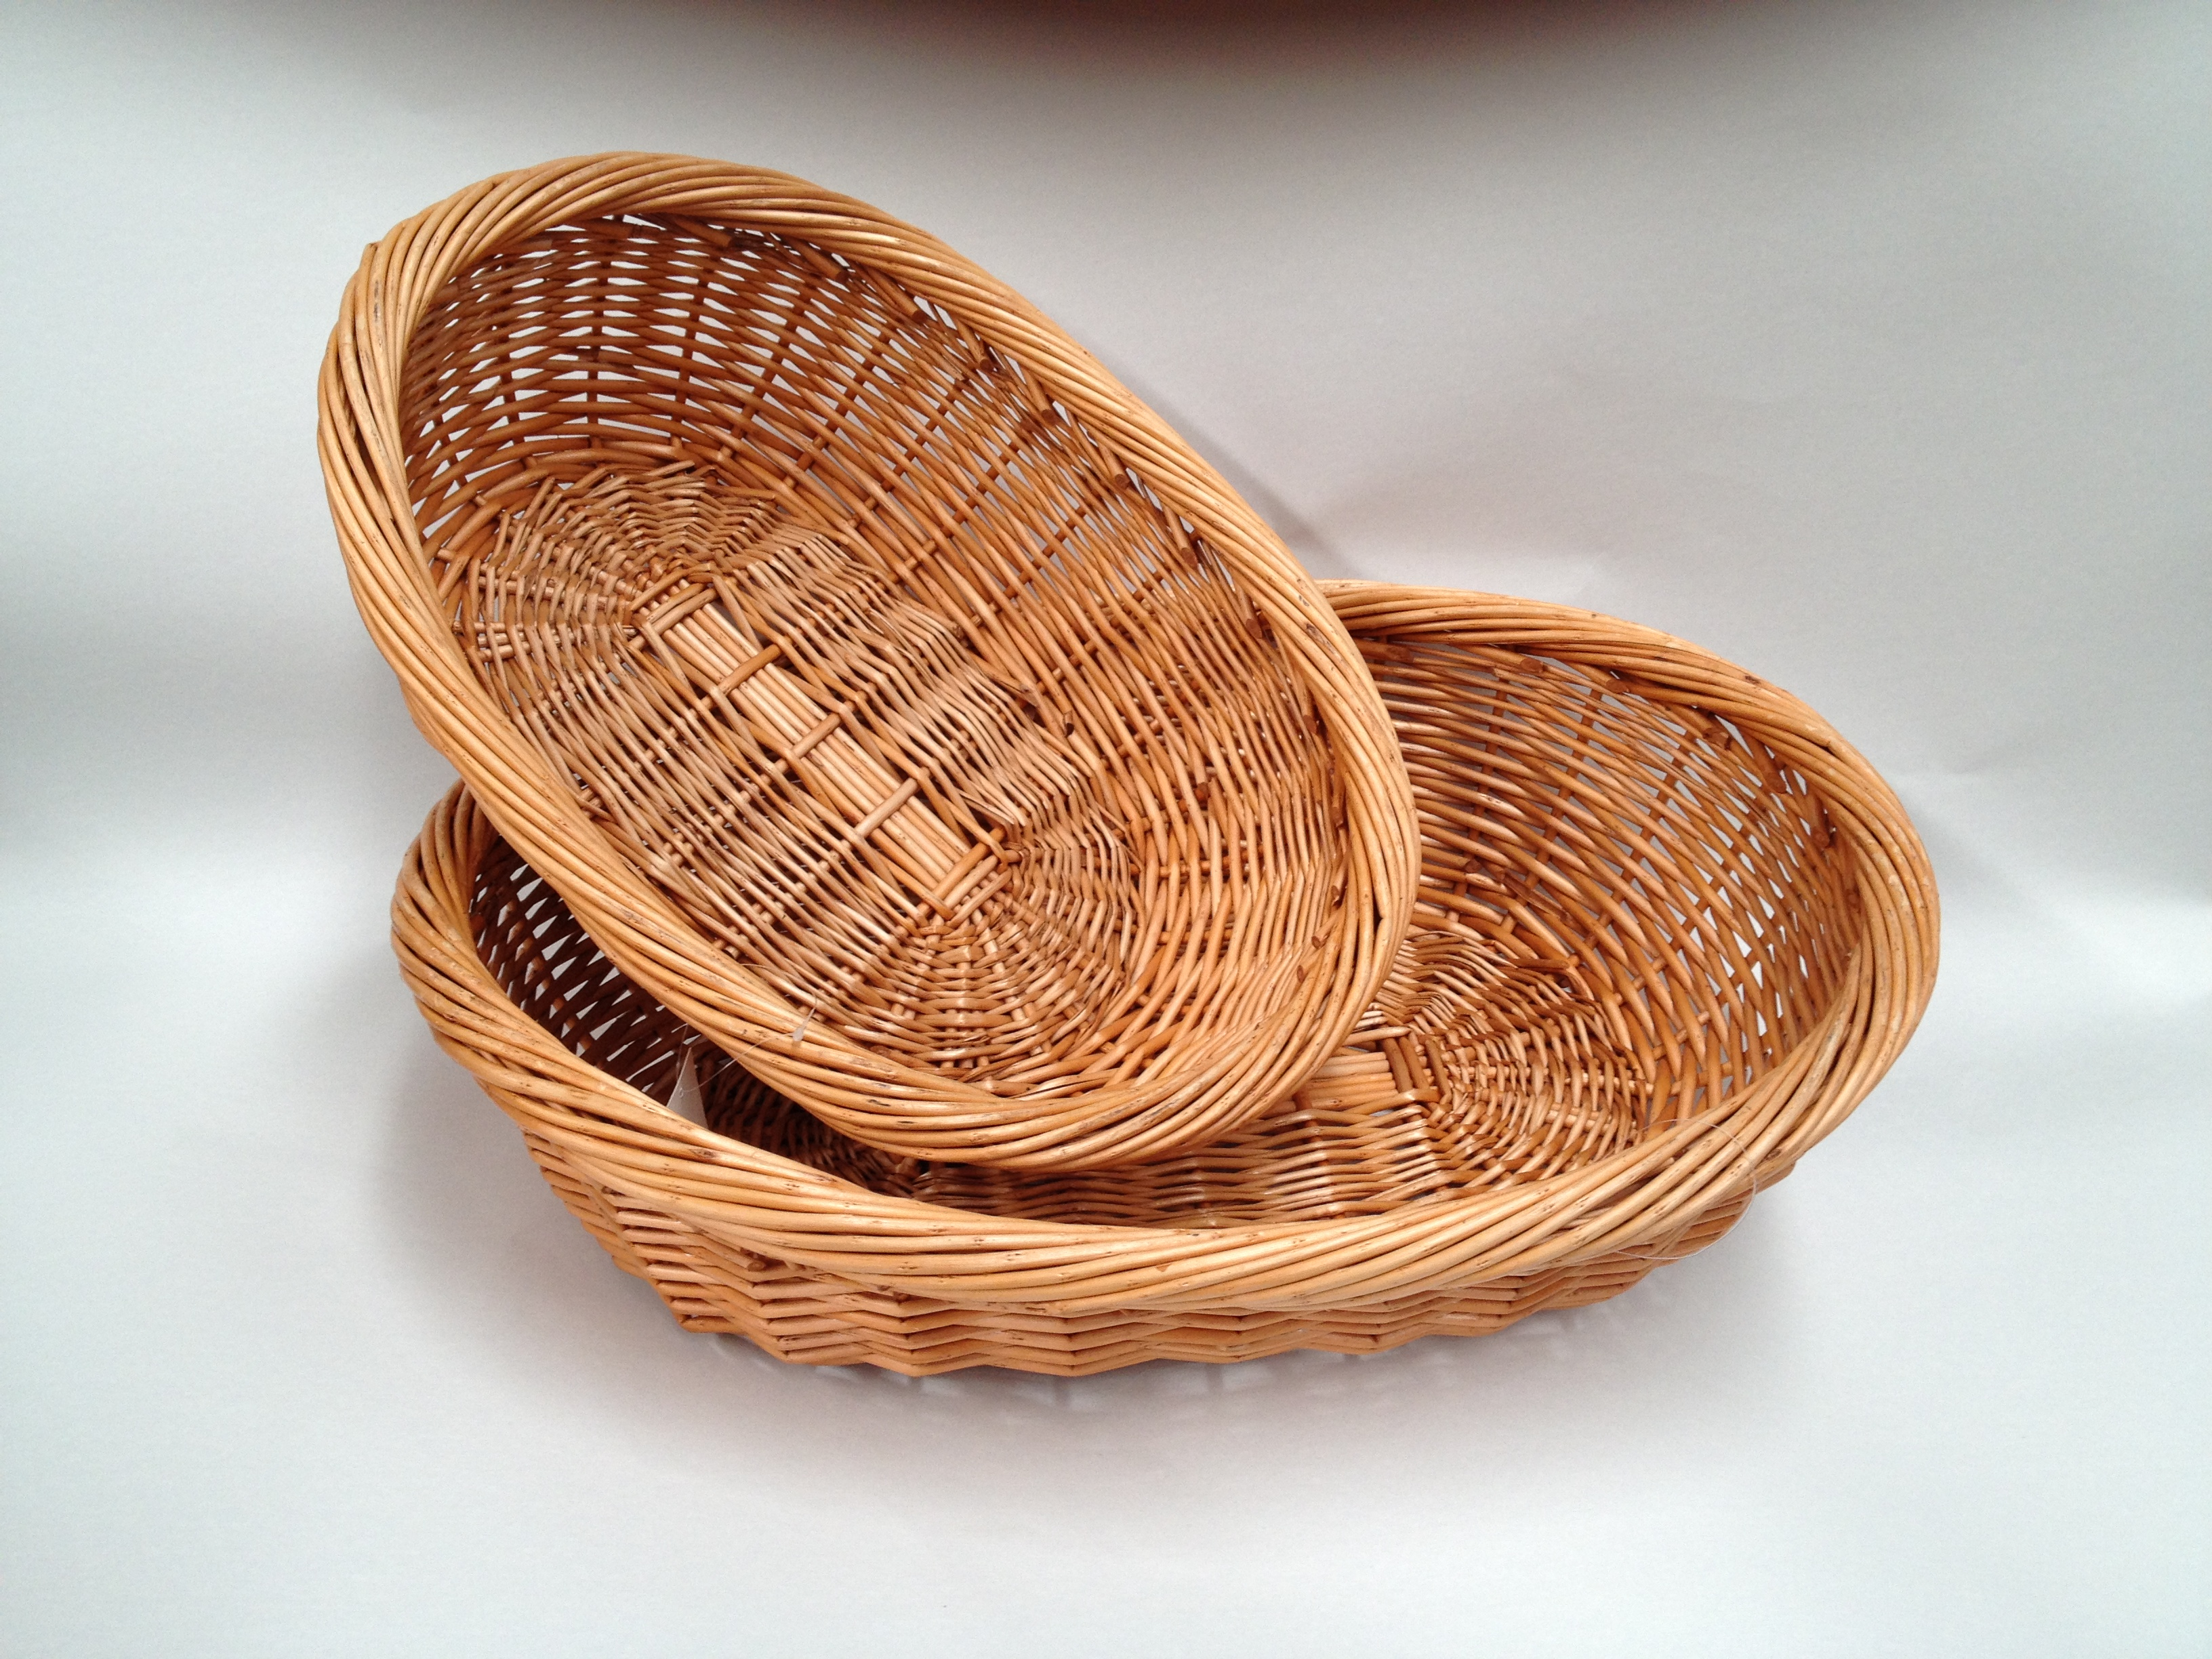 Baskets Online Wicker Basket Pet Food Delivery Melbourne Online Pet